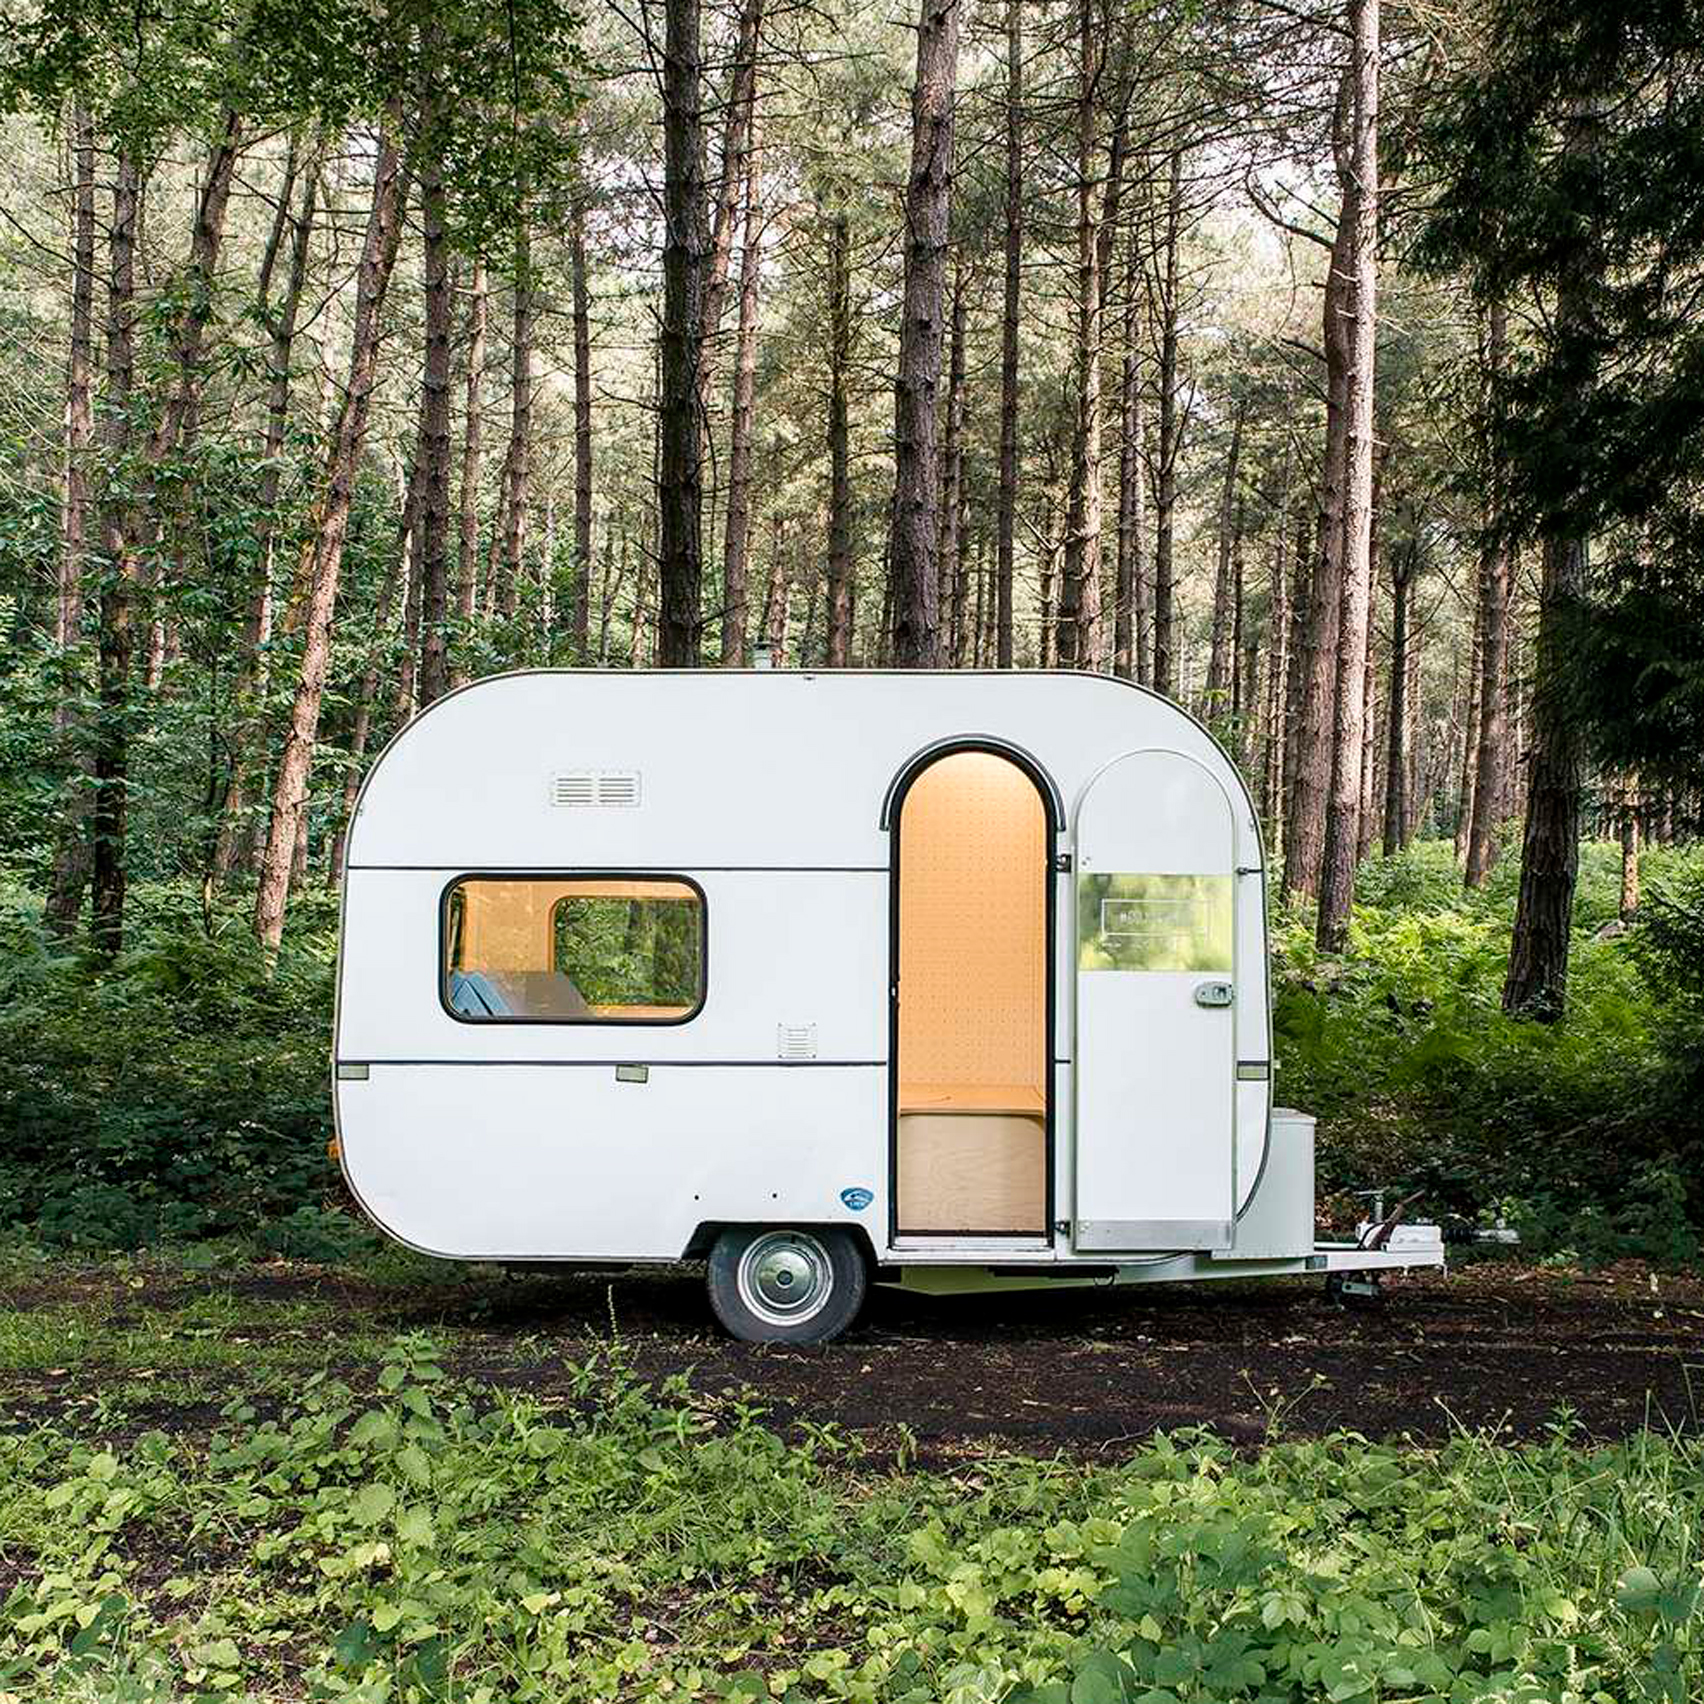 Five AM turns caravan into studio with pop-up table and